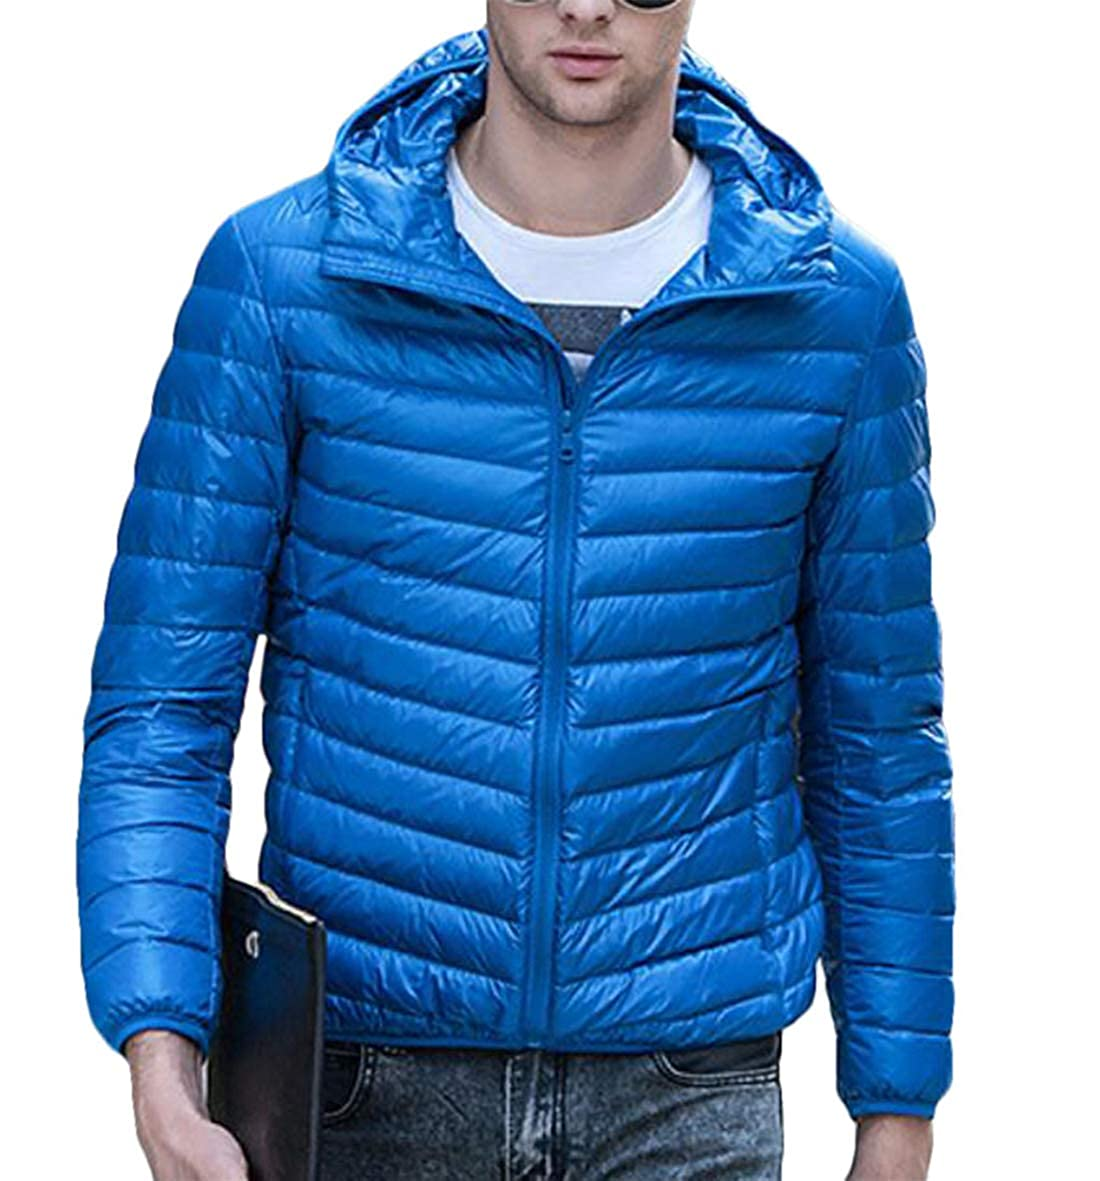 Gnao Mens Hooded Packable Down Coat Lightweight Warm Compressible Puffer Jacket